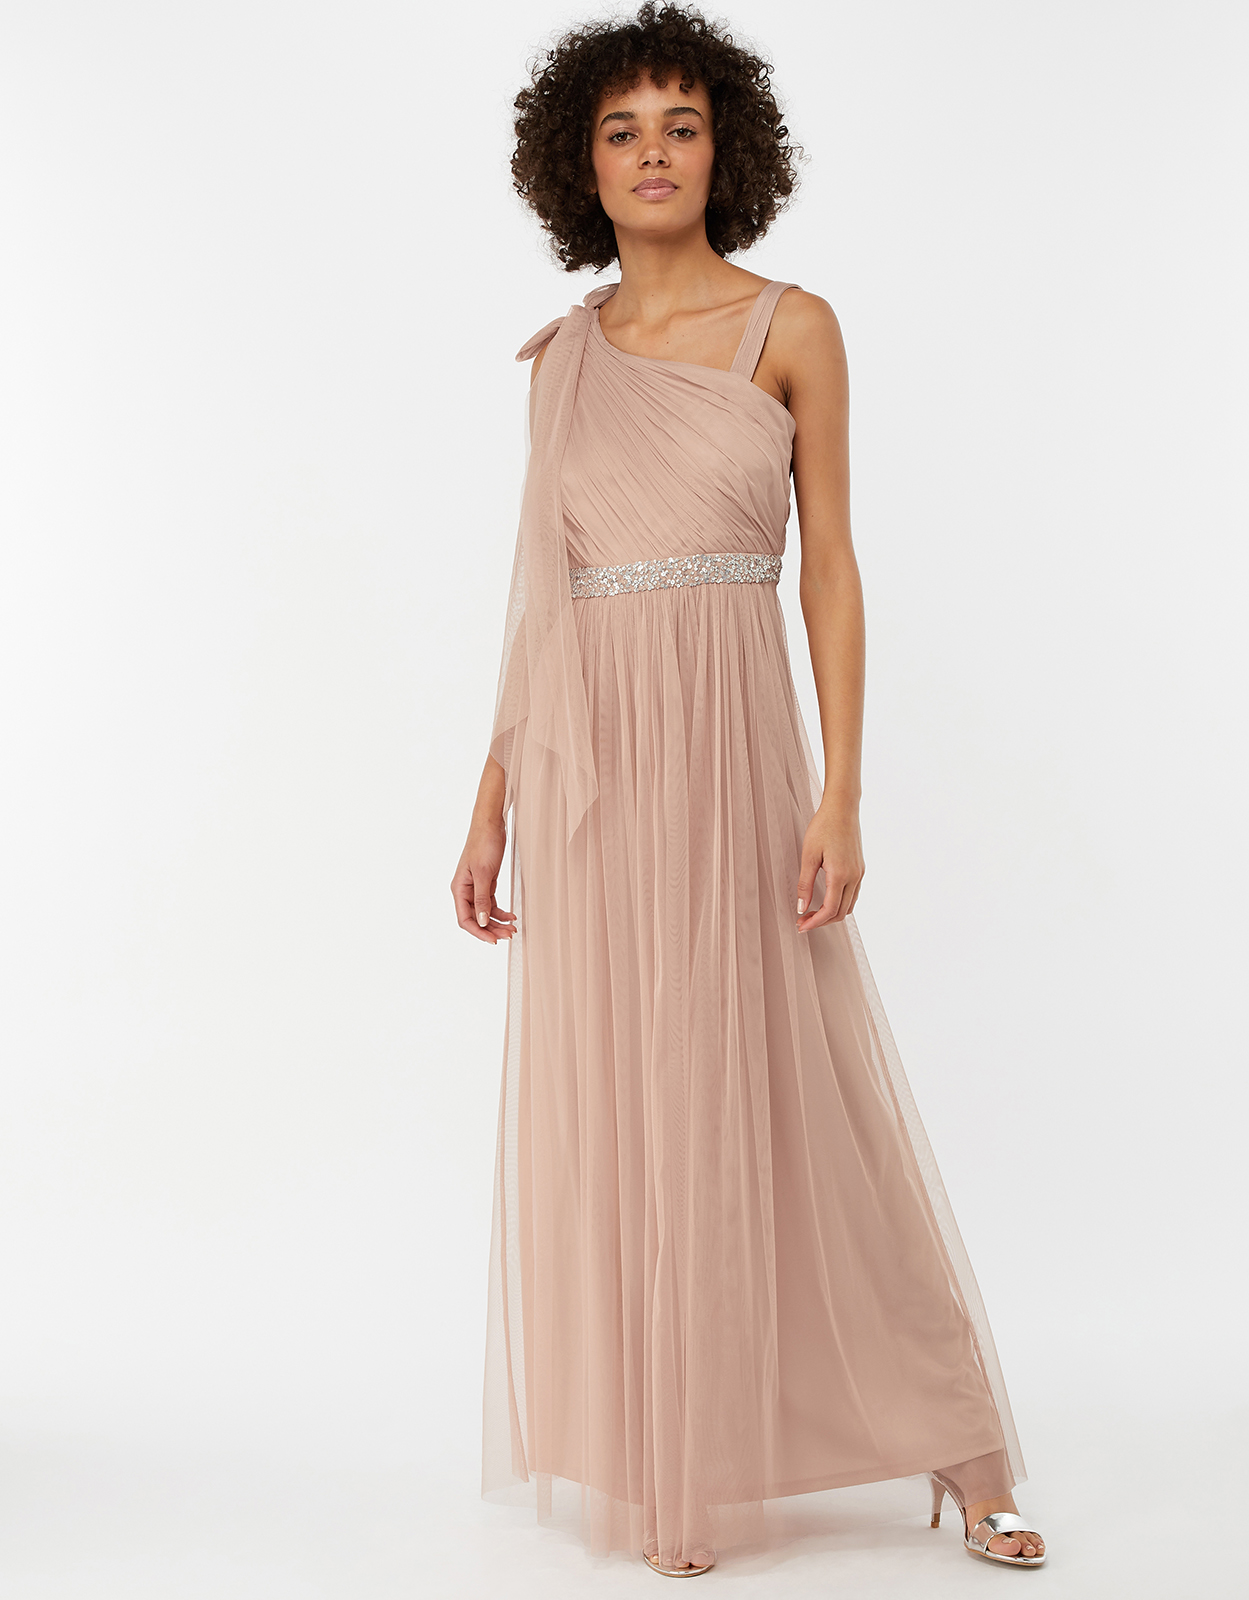 MONSOON ANOUCK ONE SHOULDER MAXI BRIDESMAID DRESS PINK